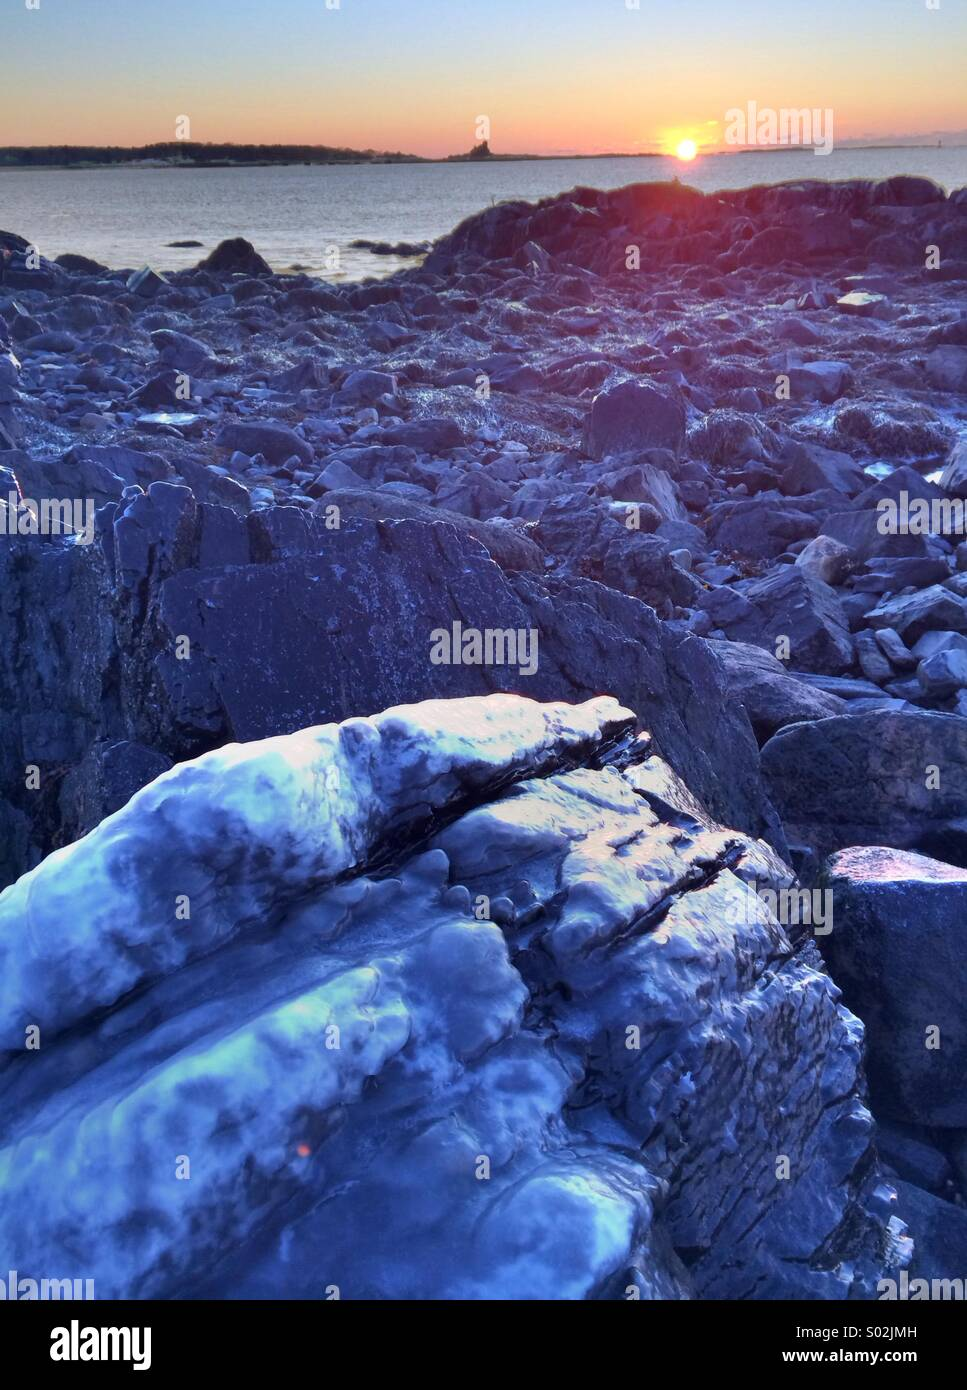 Icy boulder at dawn on the New Hampshire seacoast. Great Island Common, New Castle. - Stock Image